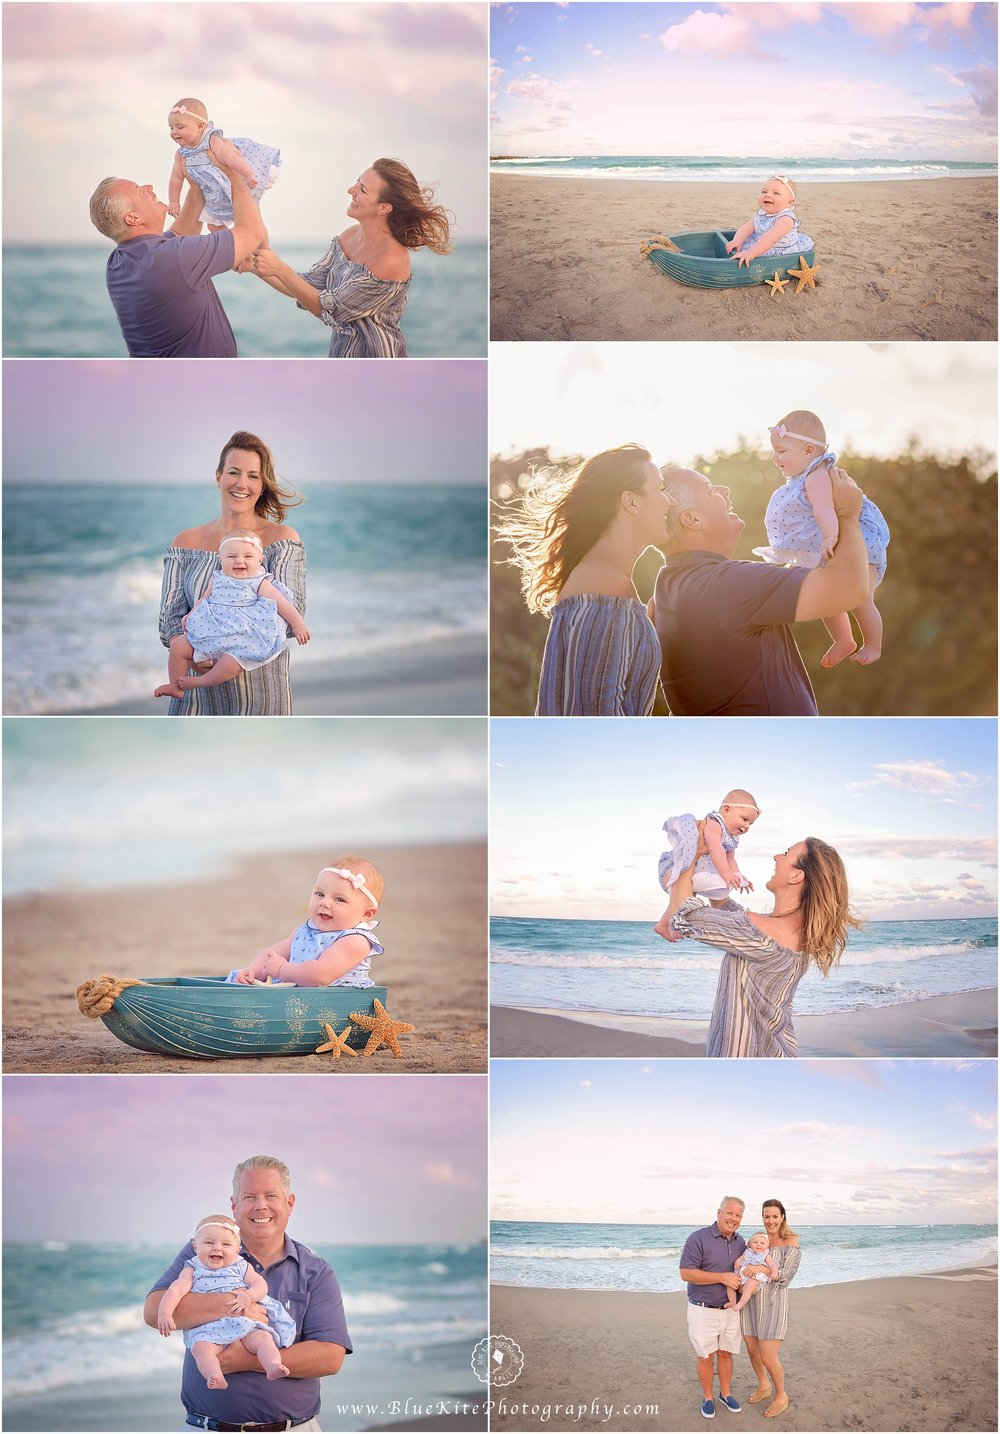 Baby Beach Session, Newborn Photographer Boca Raton, Coral Springs, Parkland, Delray, Boynton Beach